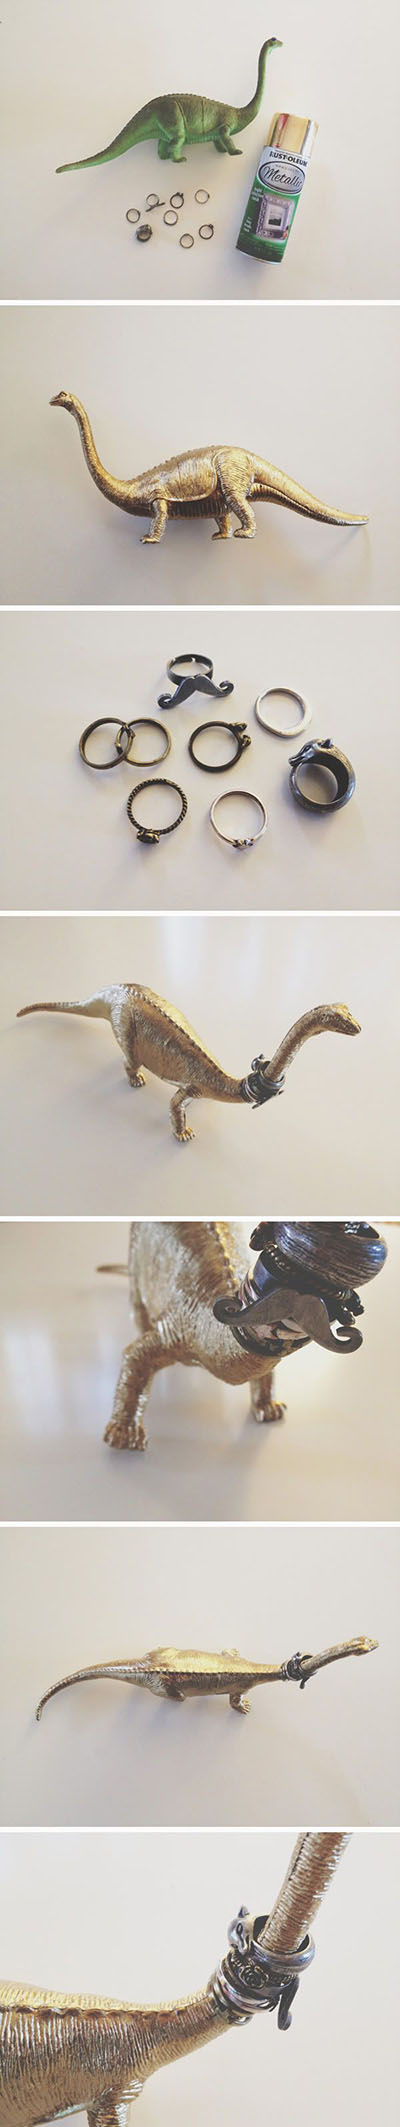 2  DIY Dino Ring Holder a82bfe0d